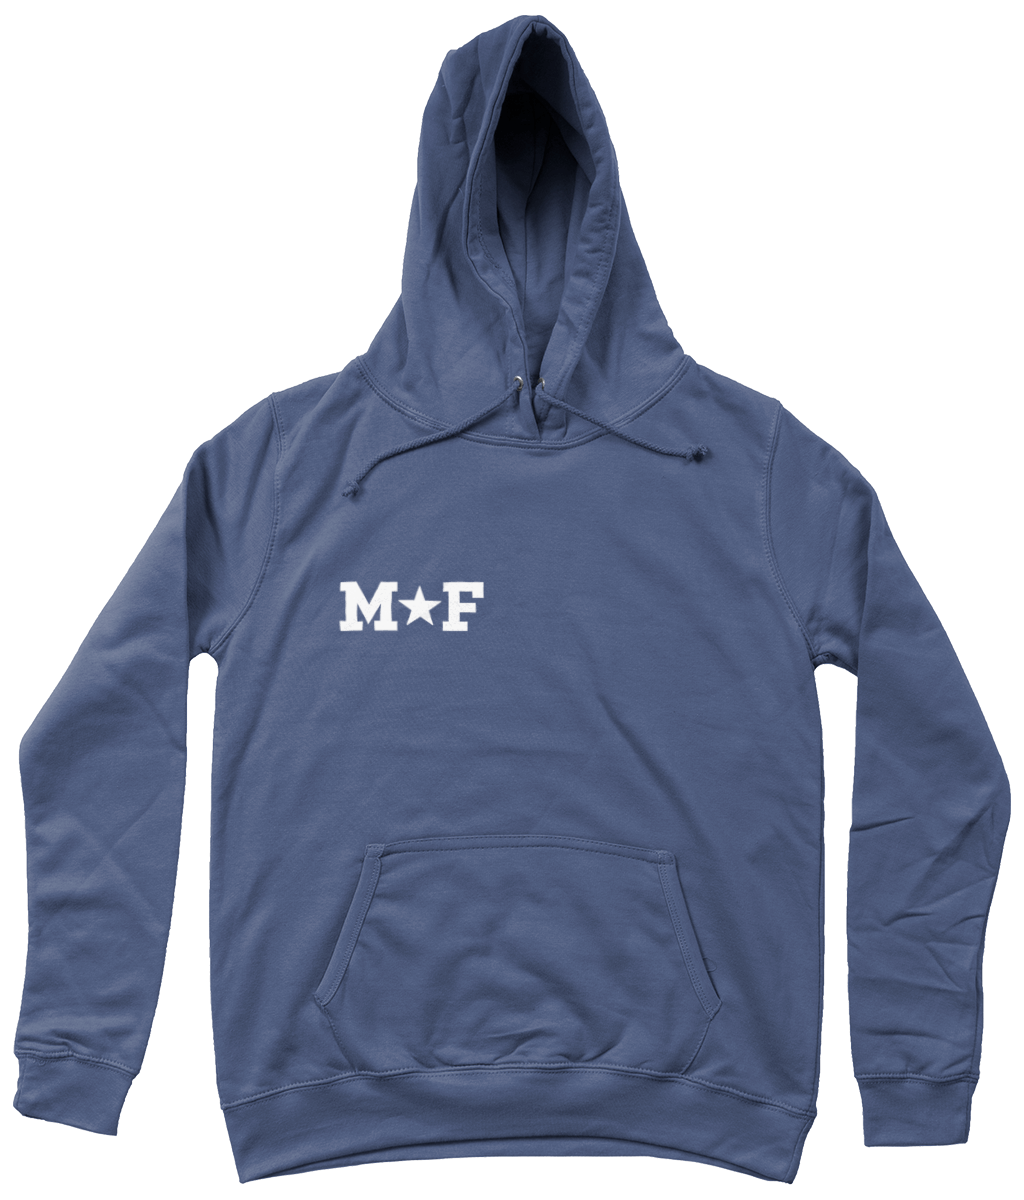 Personalised hoodie with star detail